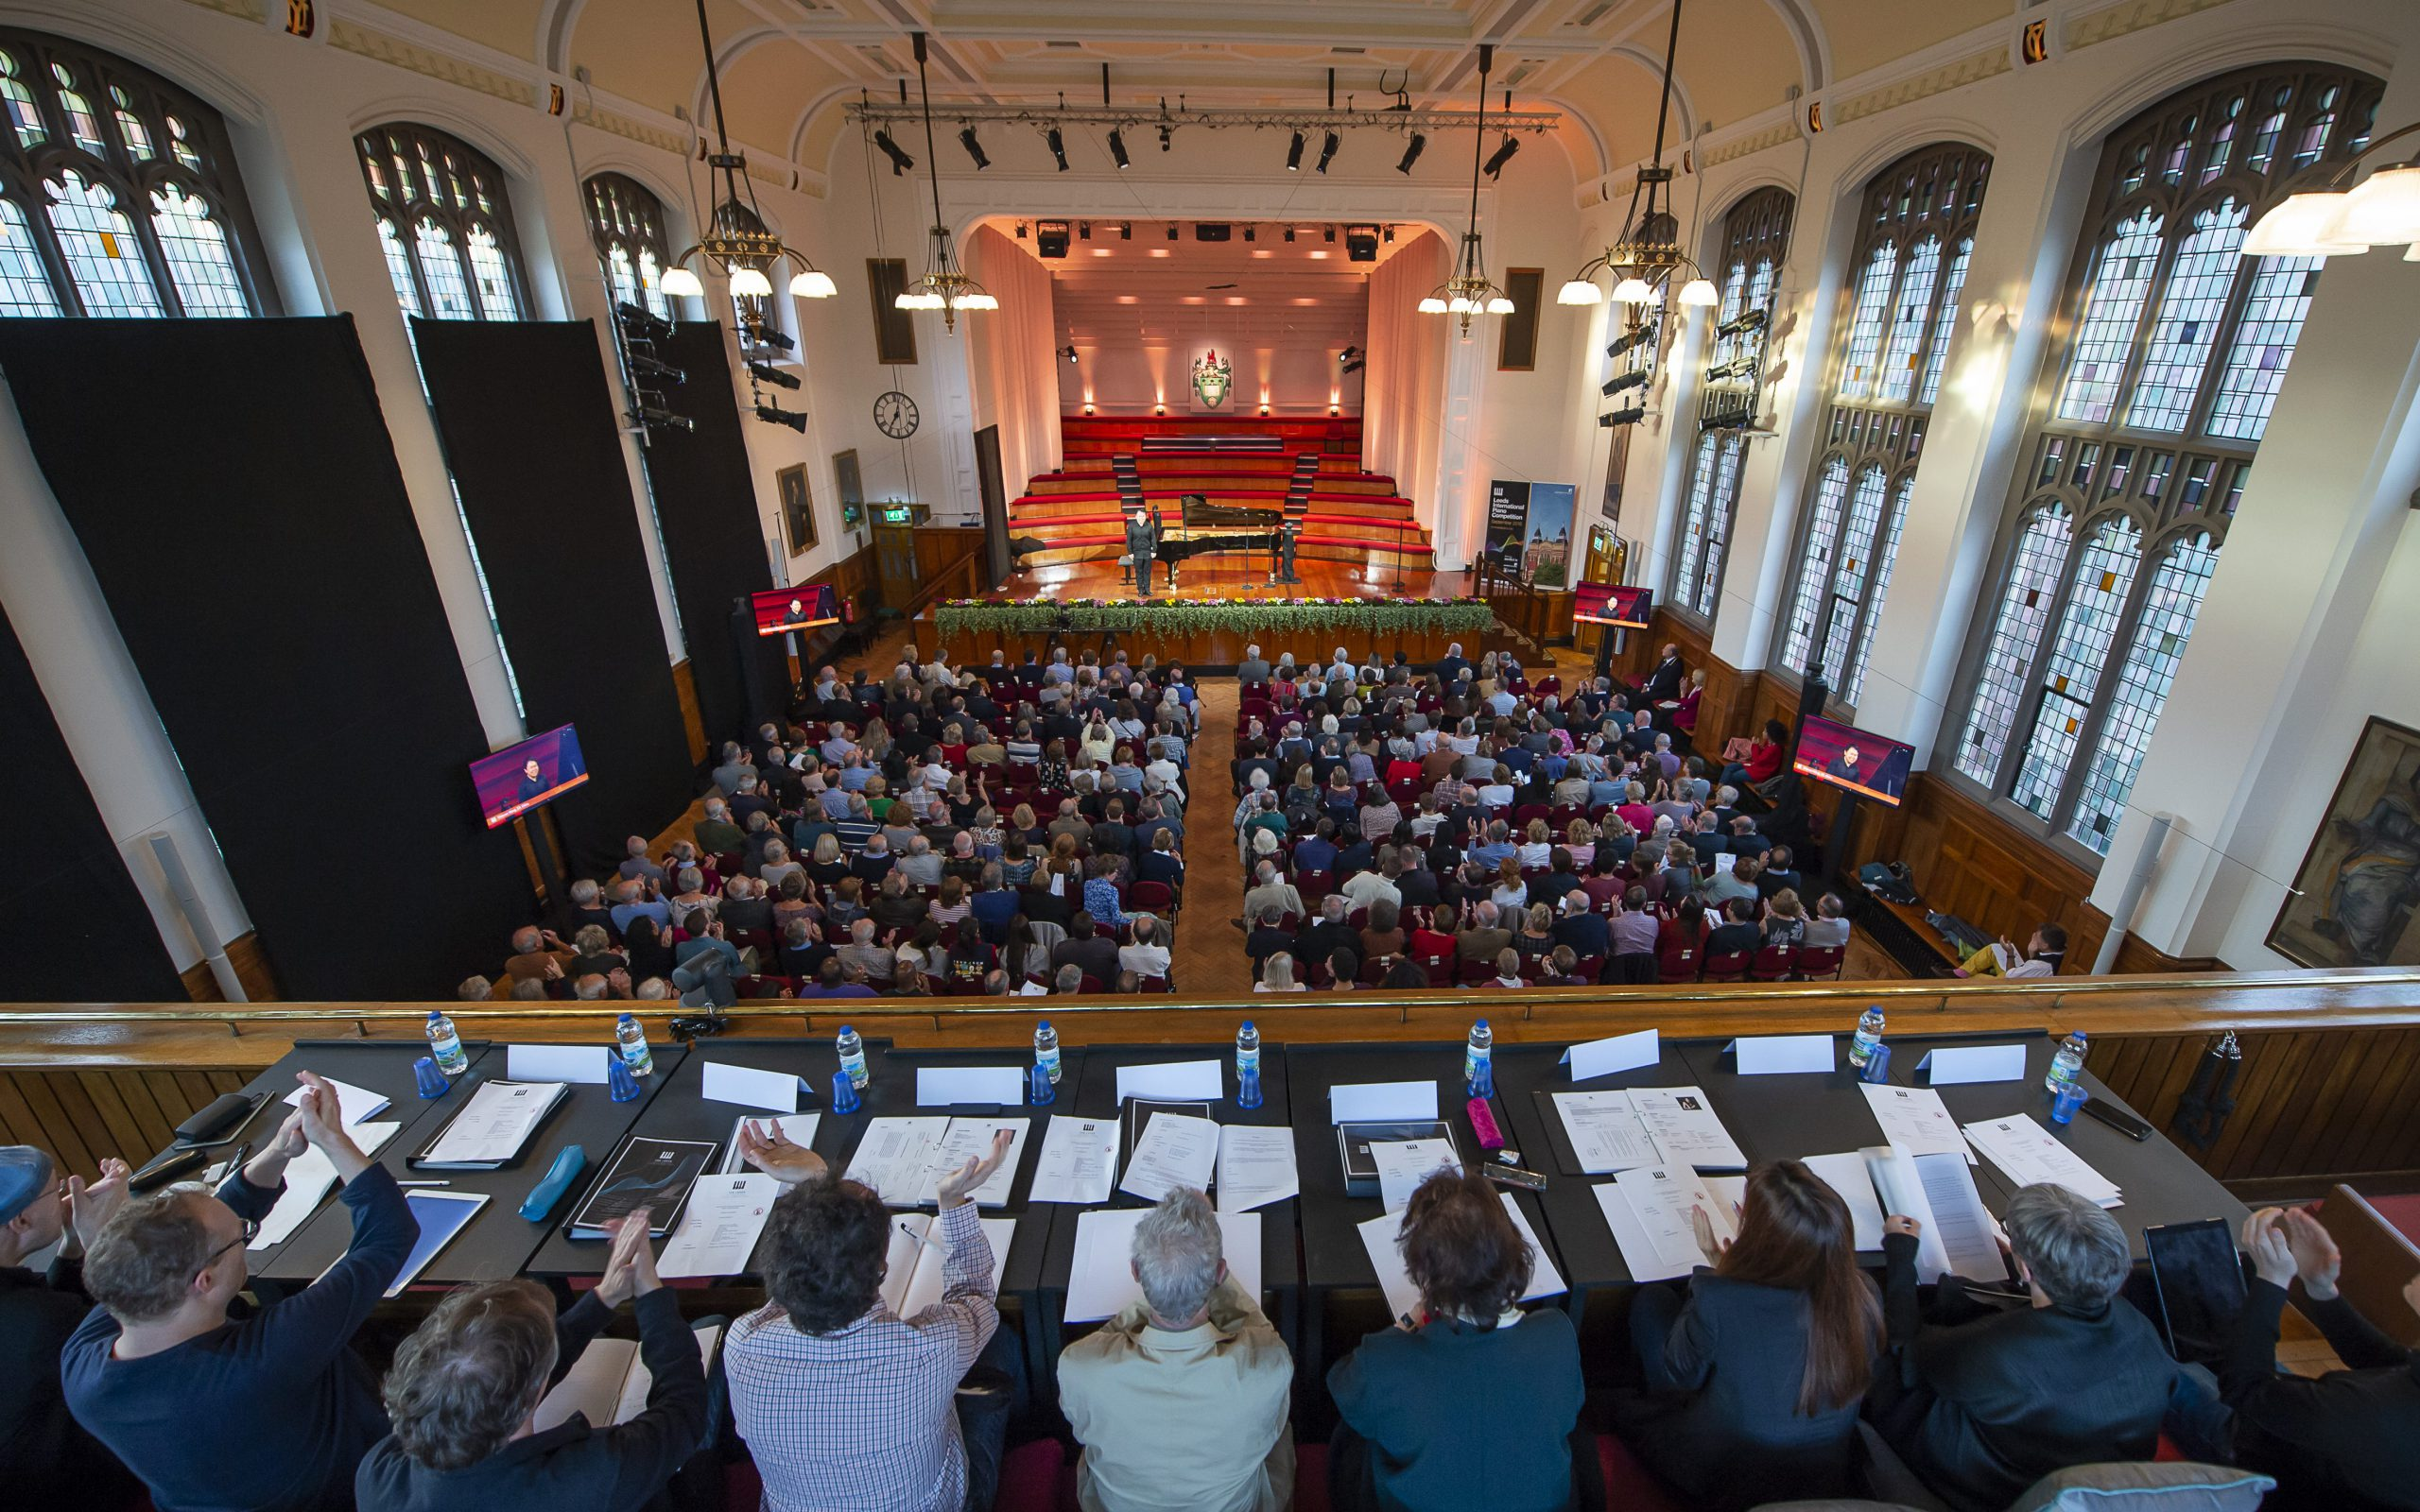 Picture looking down into the great hall, showing judges, audience and grand piano on stage.